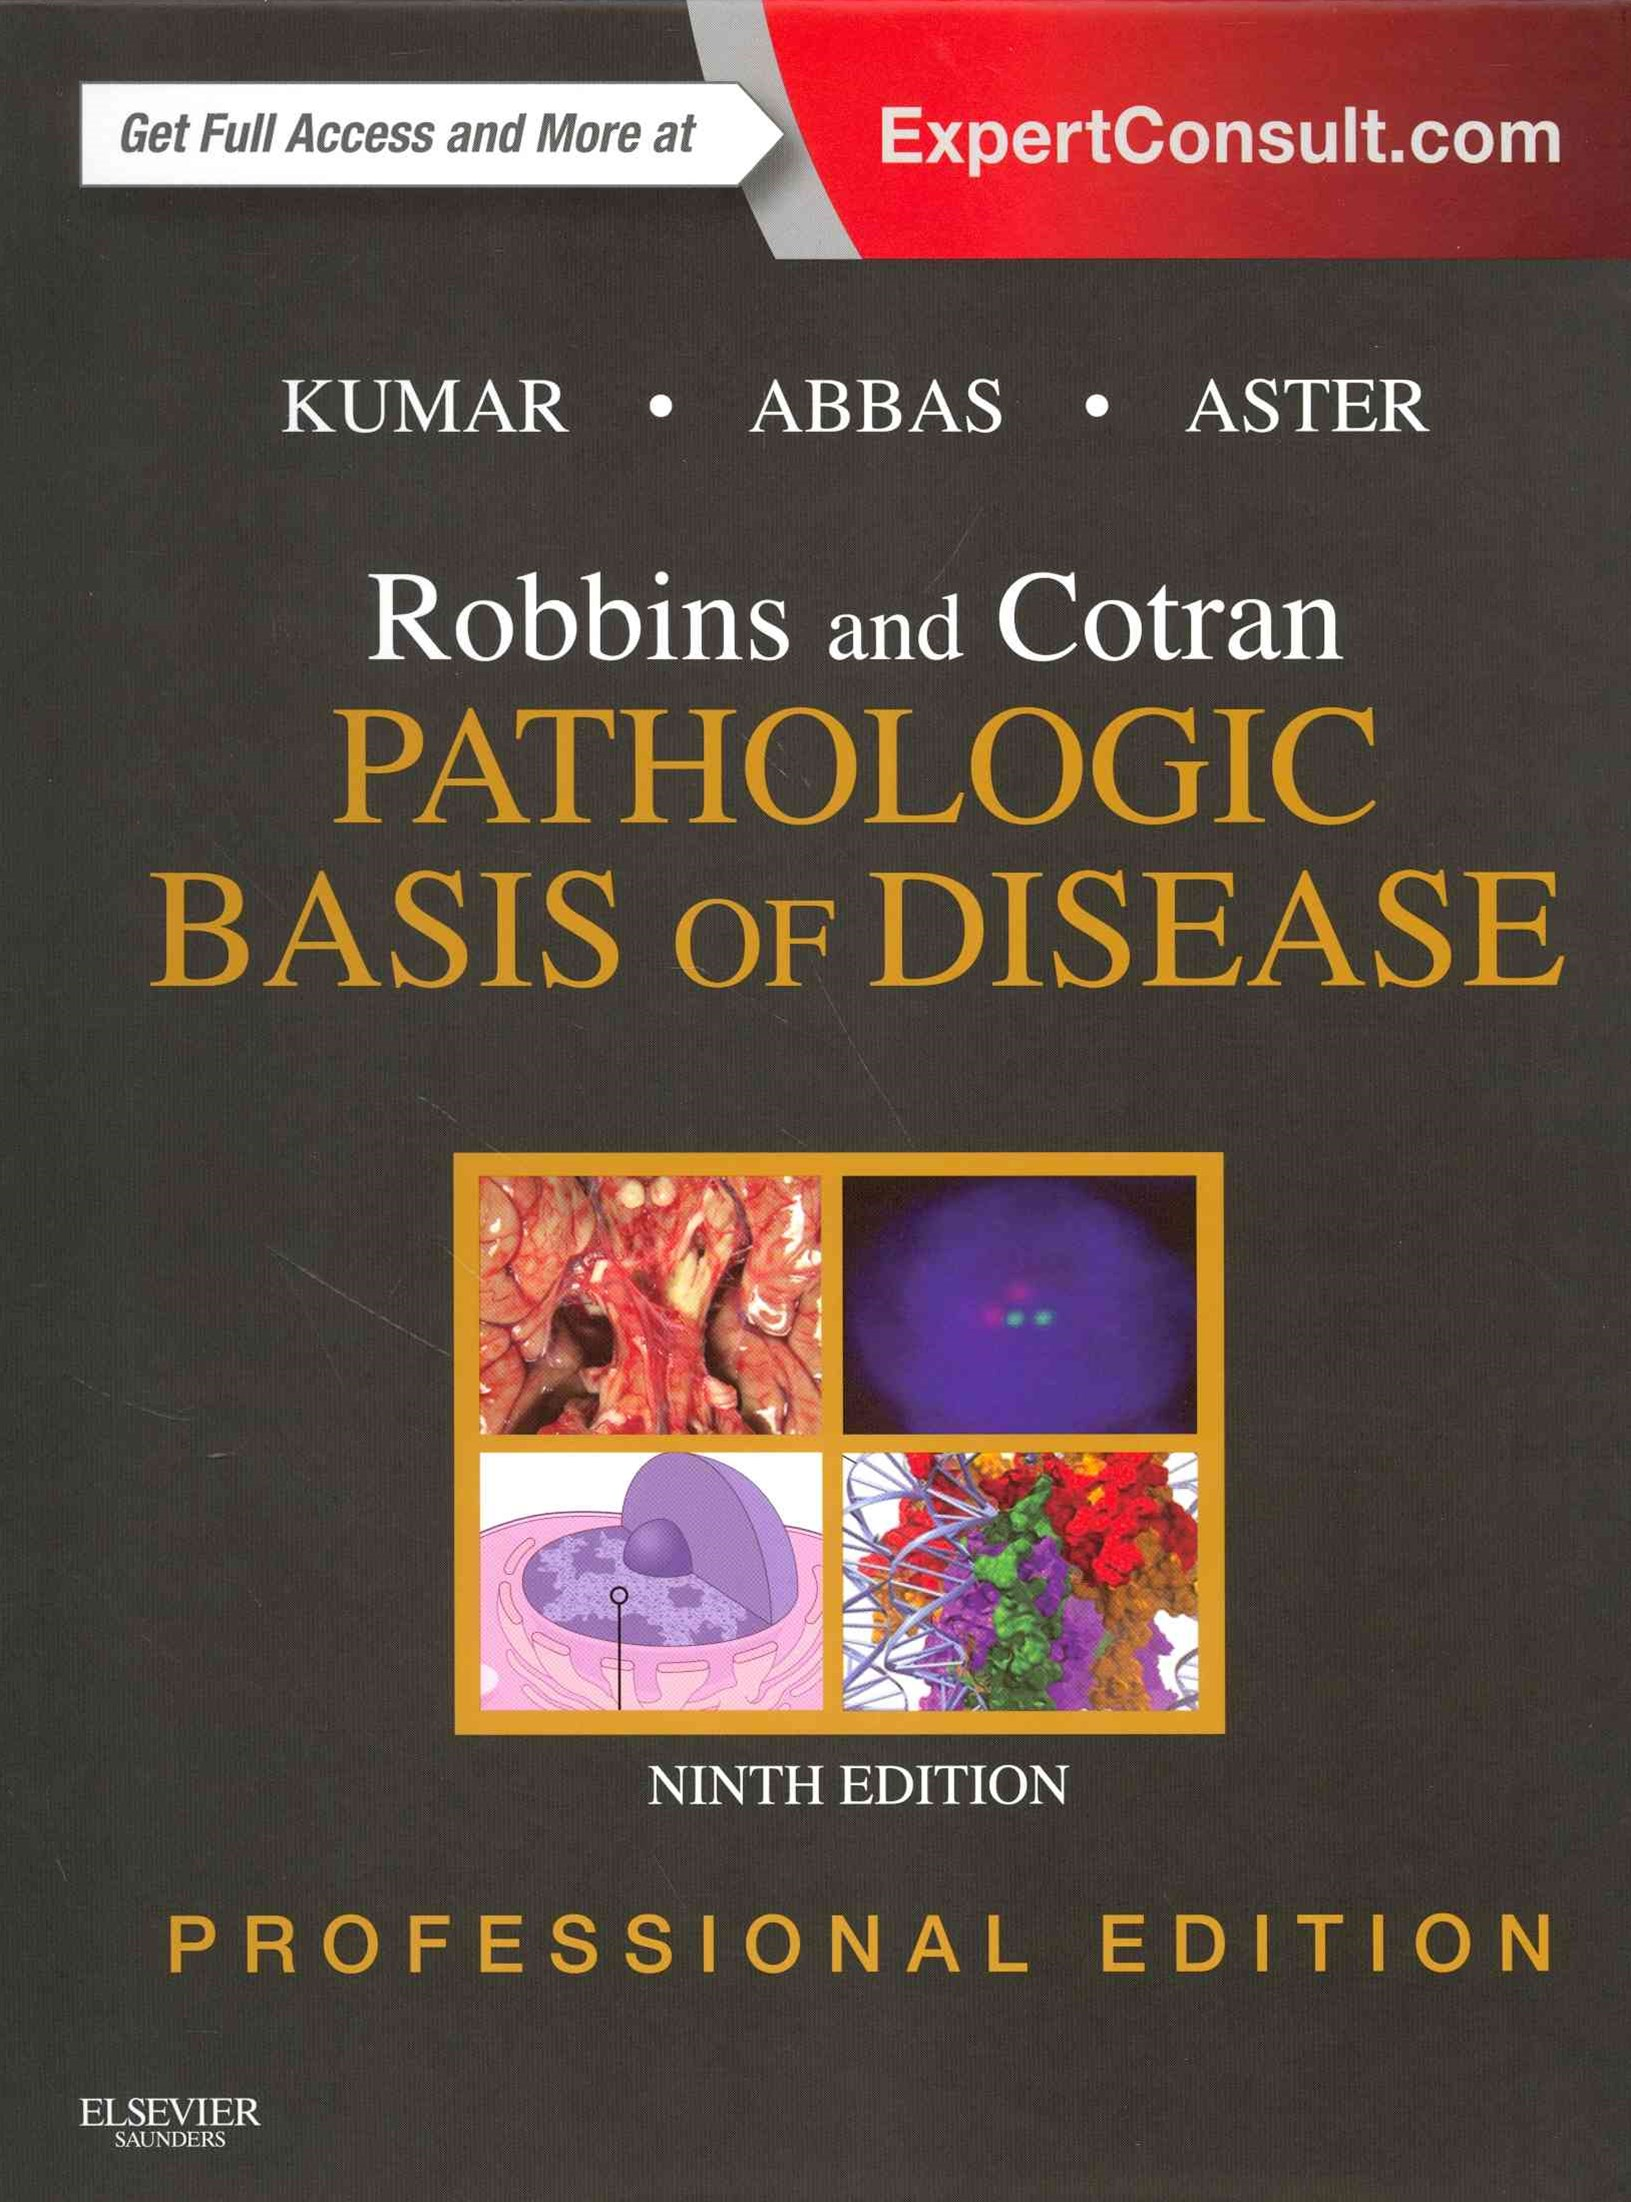 Robbins and Cotran Pathologic Basis of Disease, Professional Edition